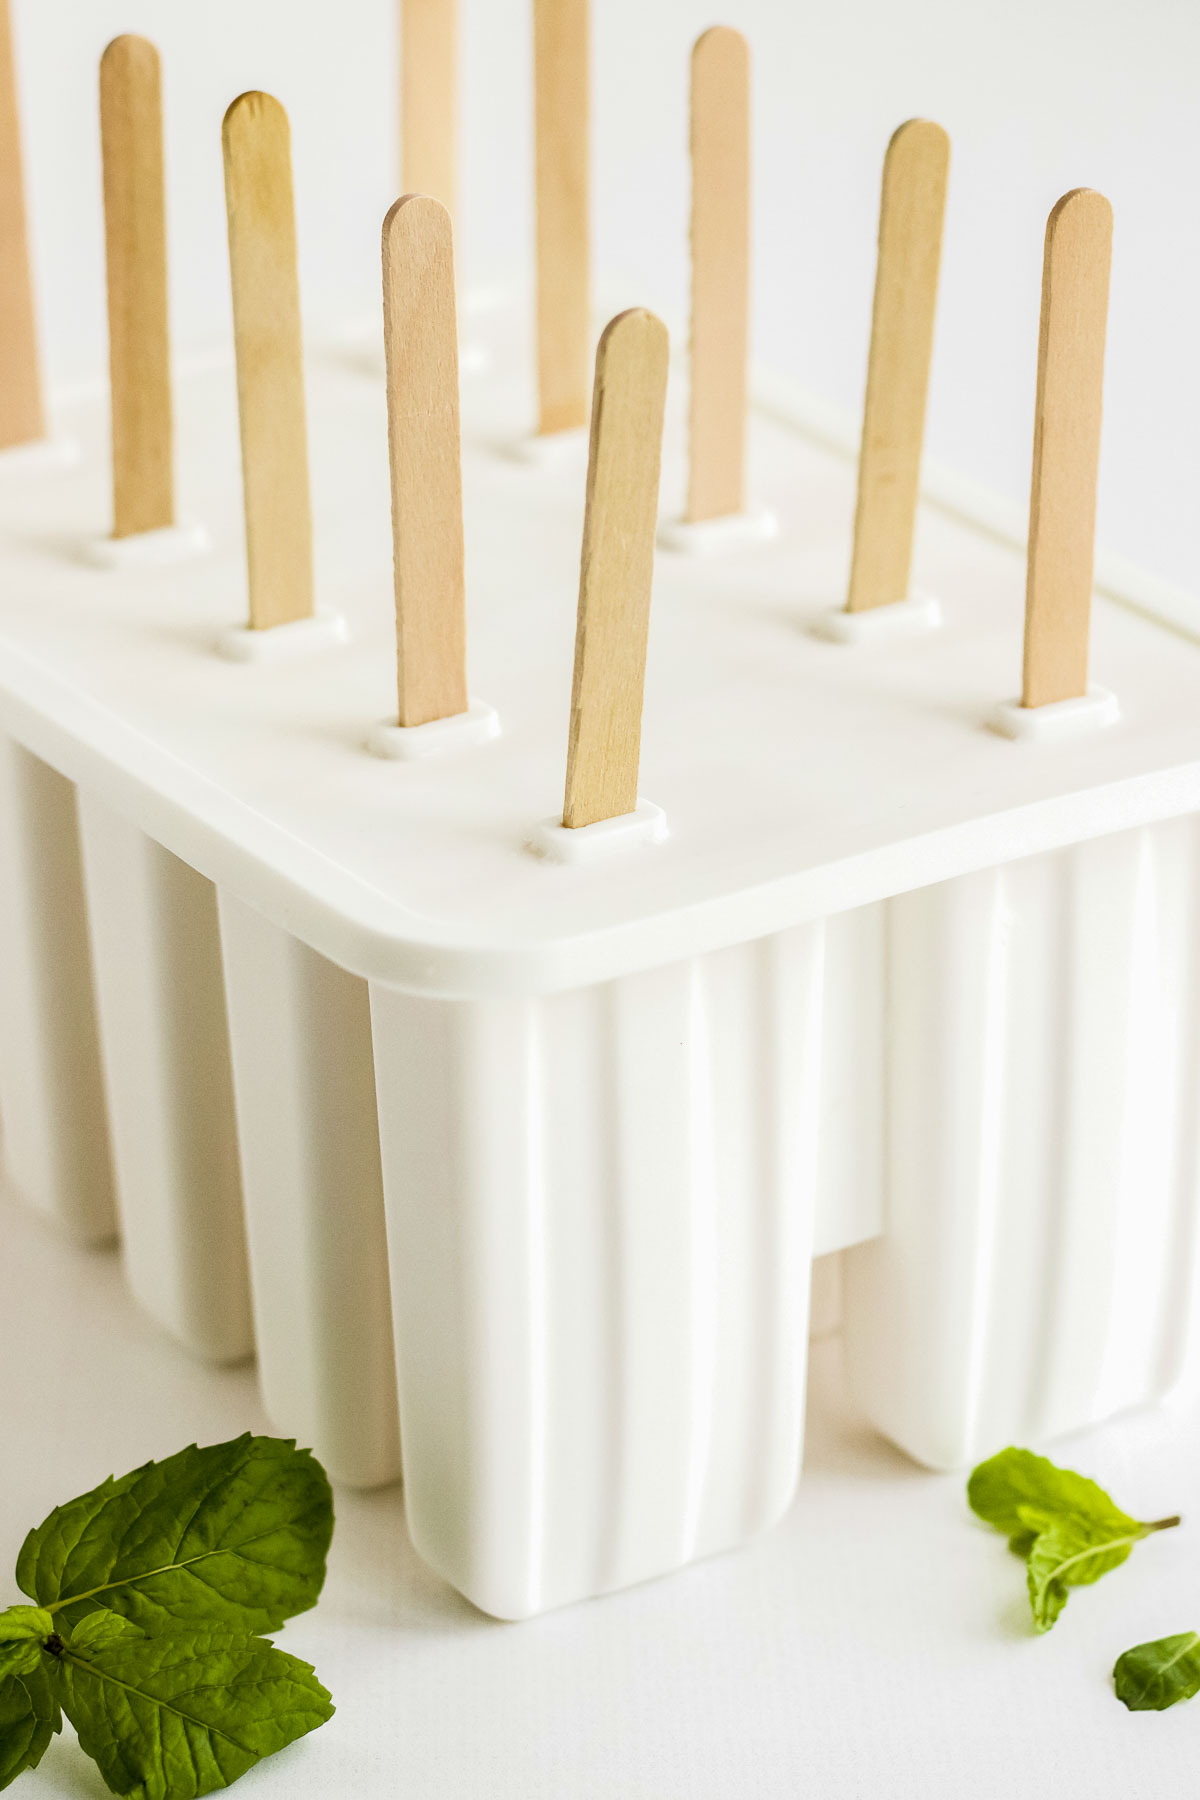 Set of 10 popiscle mold.